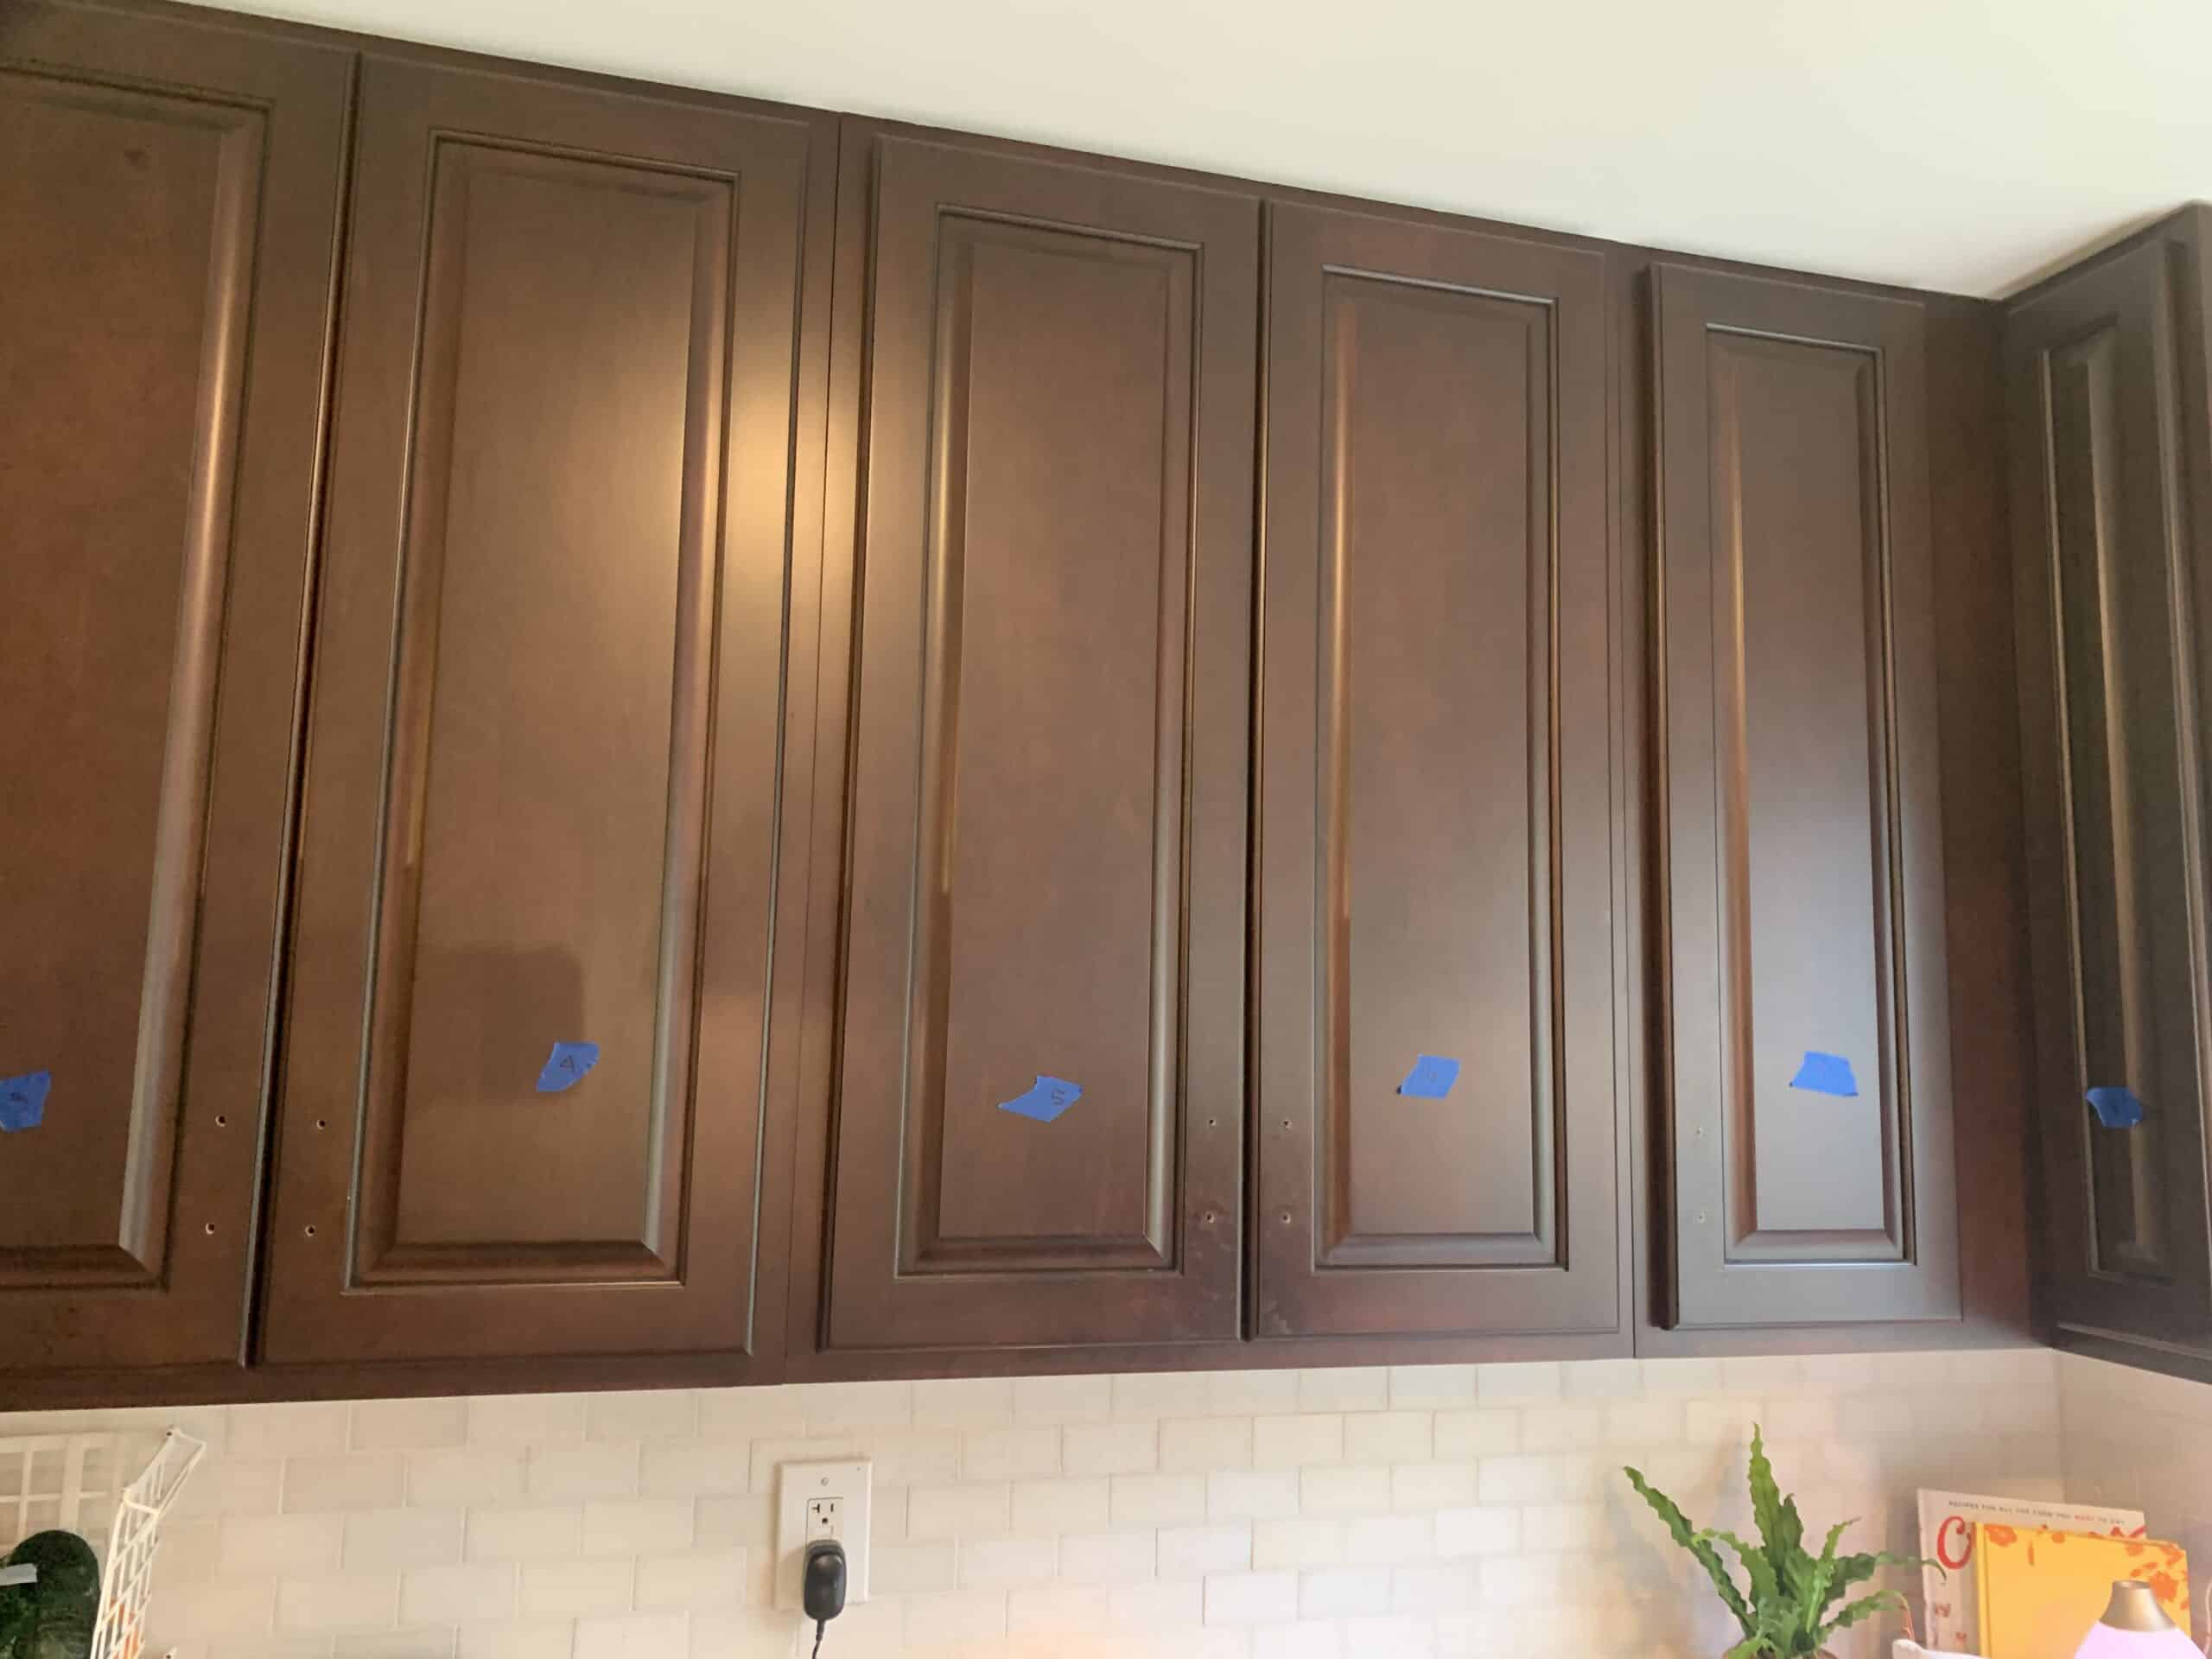 Labeled cabinets for painting